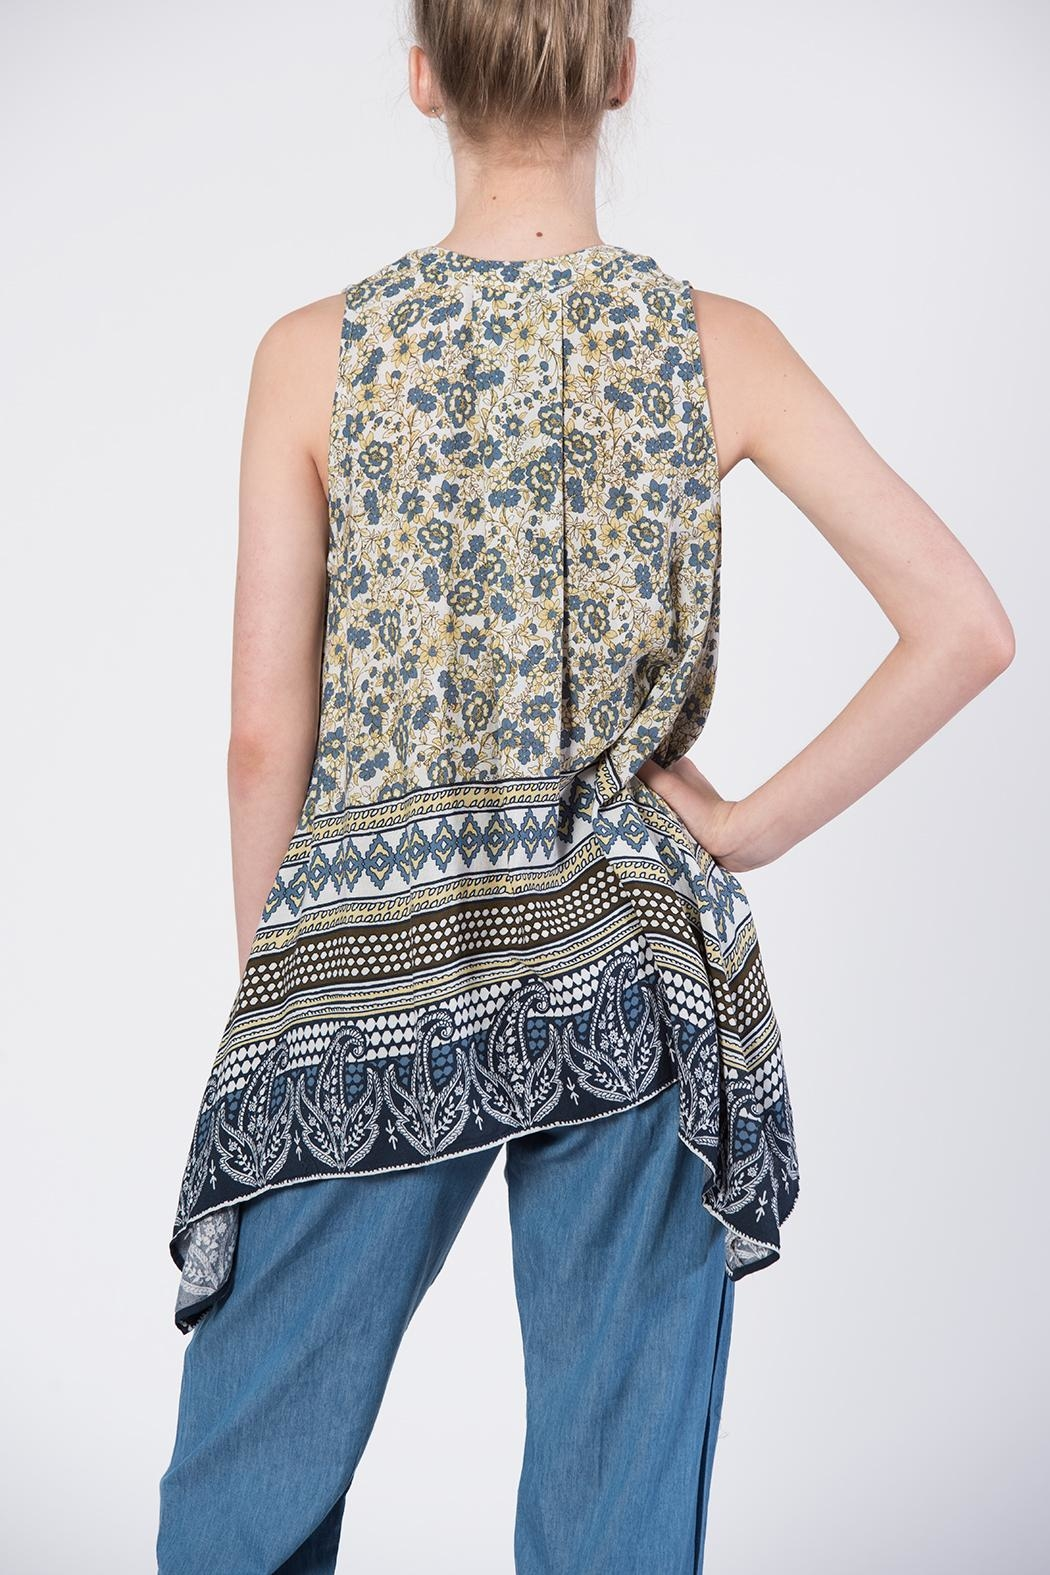 annabelle Print Tie Top - Front Full Image